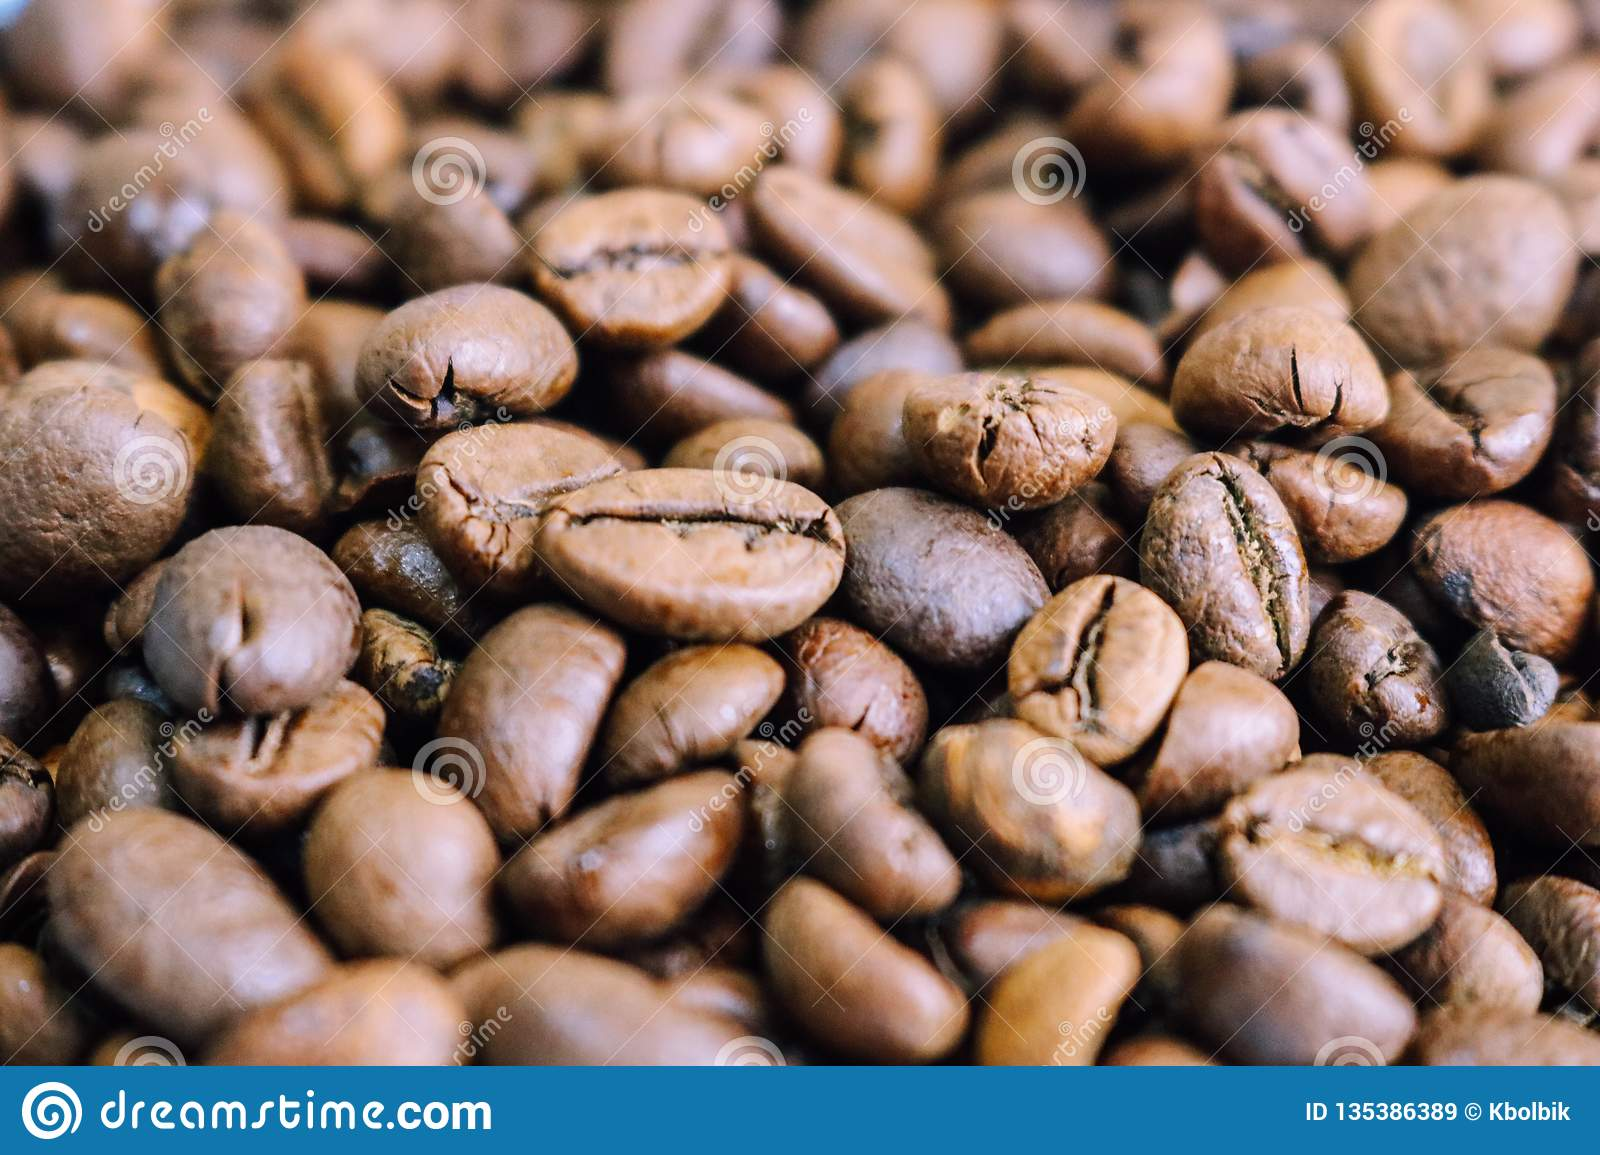 Beautiful texture of freshly roasted selected delicious rich brown natural fragrant coffee tree grains, Arabica coffee beans